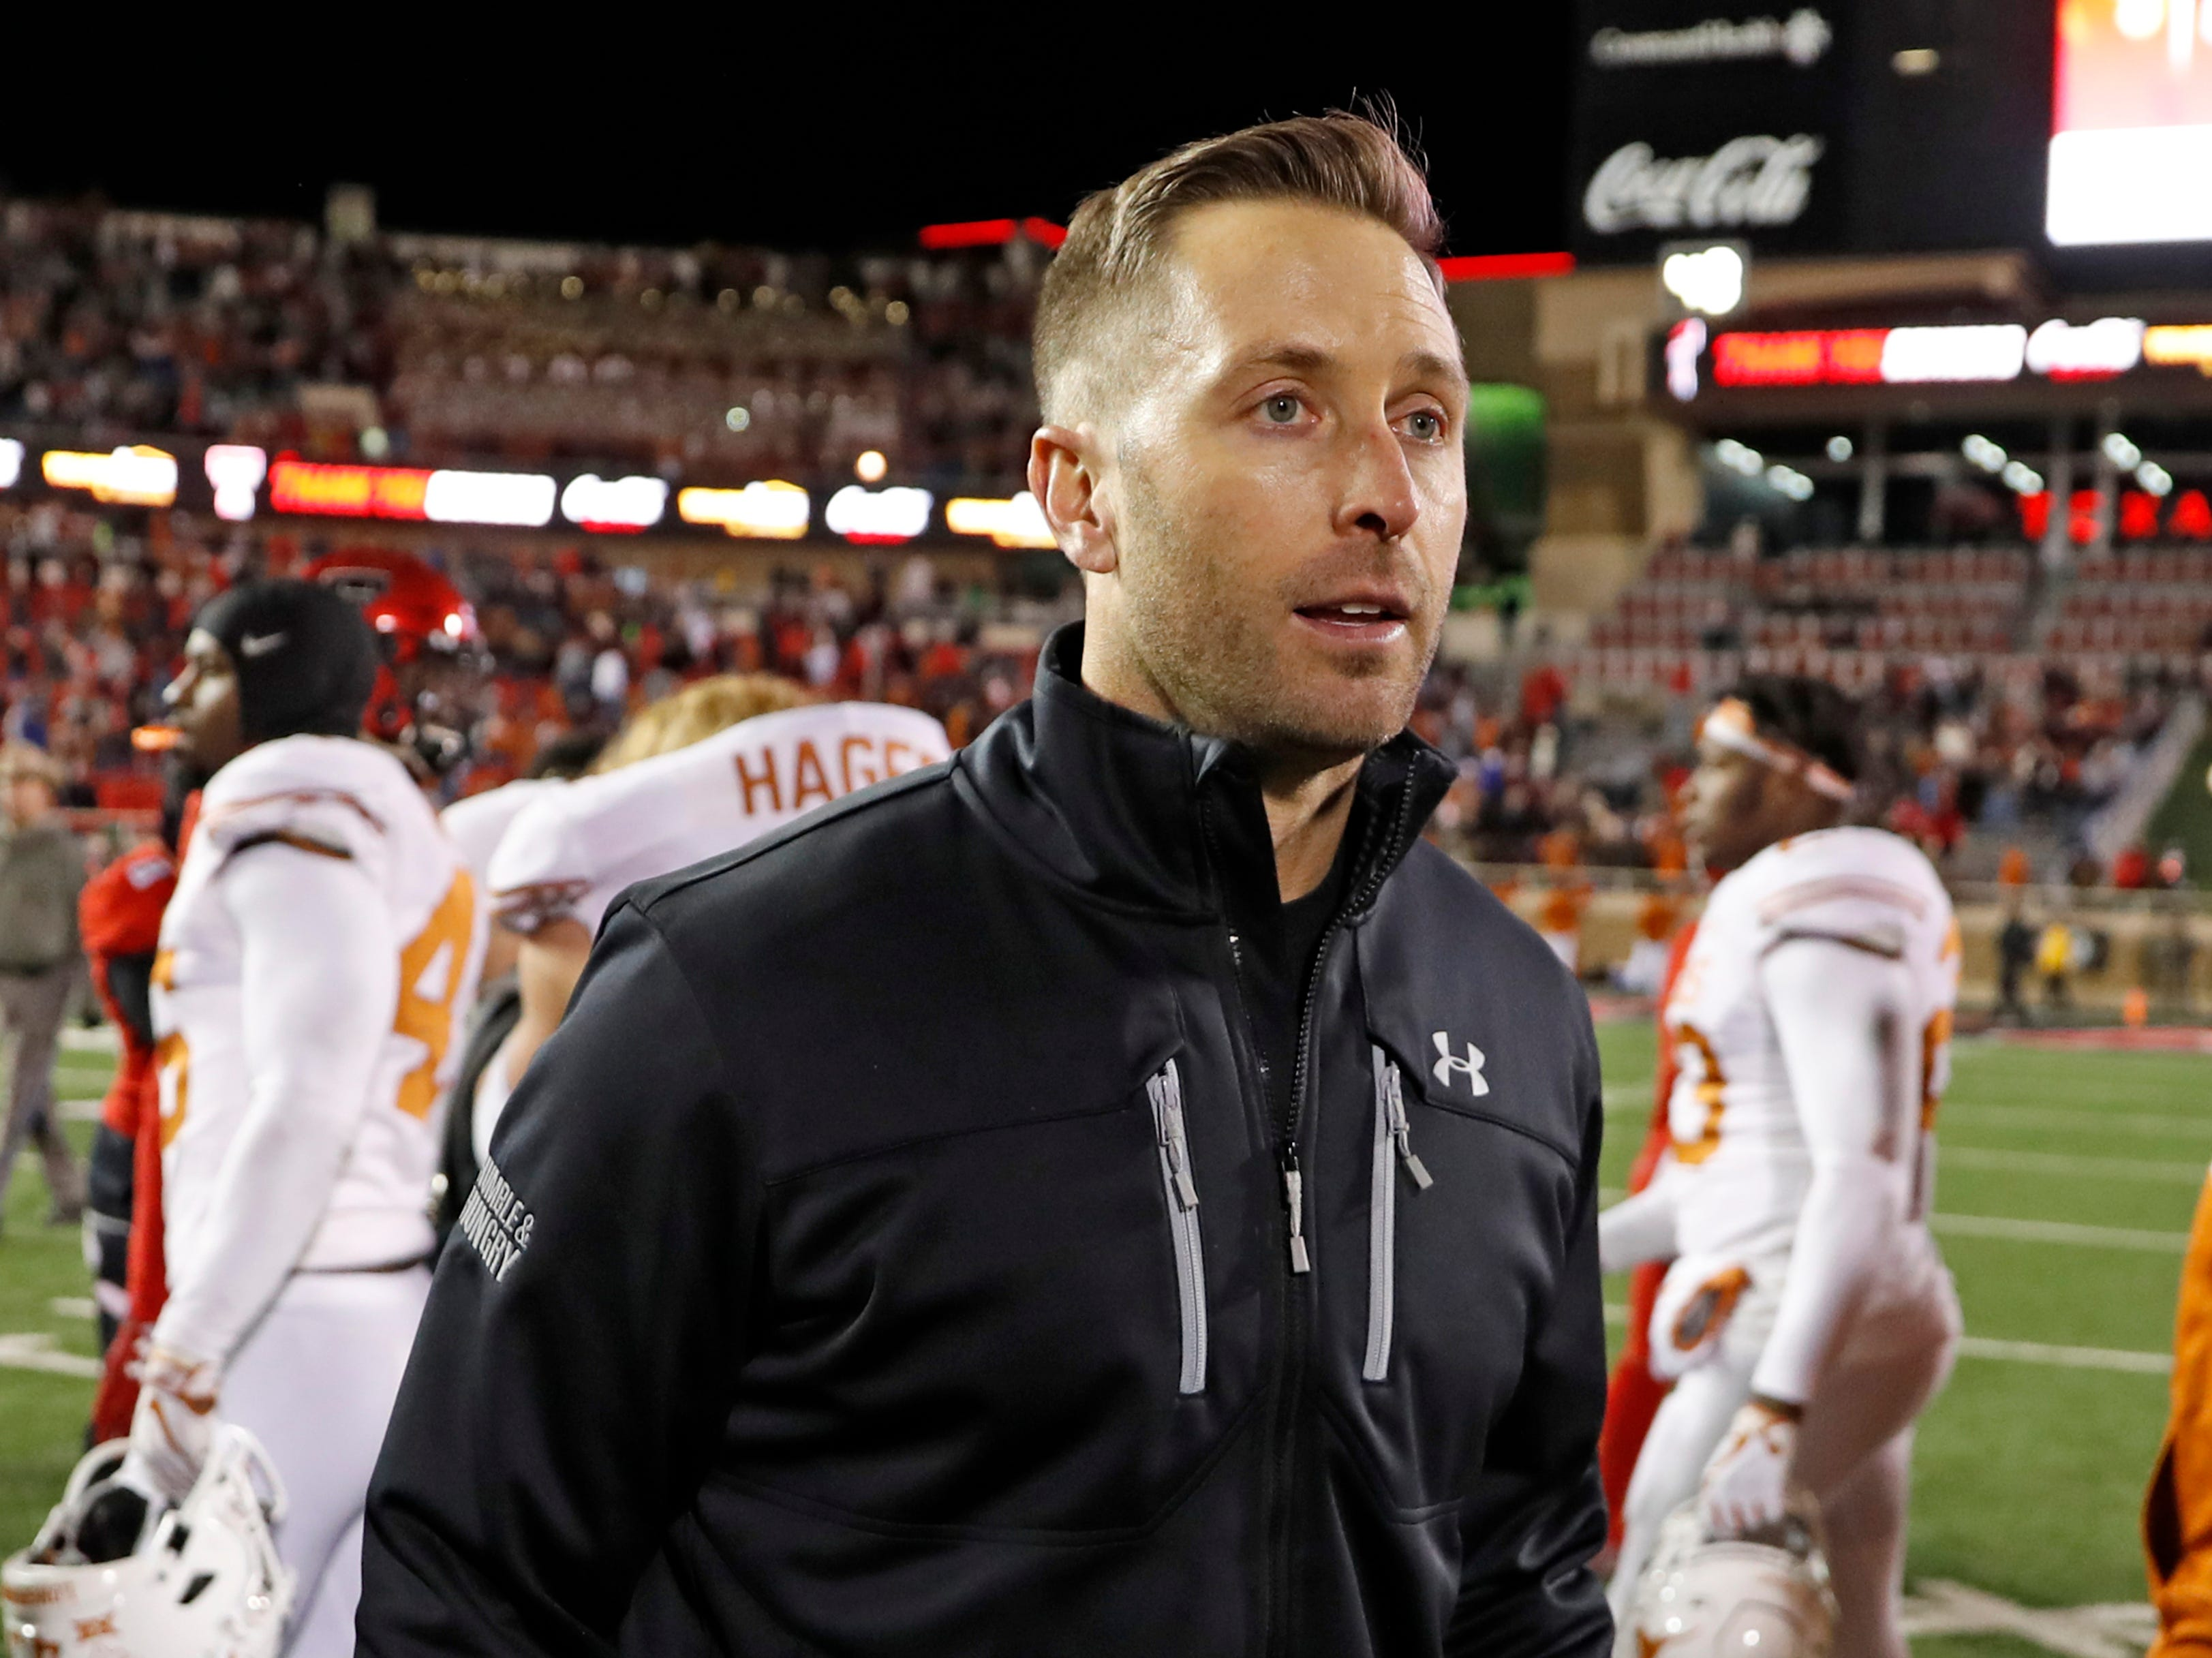 In this Nov. 10, 2018 file photo Texas Tech coach Kliff Kingsbury walks off the field after the team's NCAA college football game against Texas in Lubbock, Texas. The Arizona Cardinals have hired Kingsbury, a move aimed at providing guidance for young quarterback Josh Rosen and resuscitating the worst offense in the NFL. The Cardinals announced the hiring Tuesday, Jan. 8, 2018 after a long interview earlier in the day.